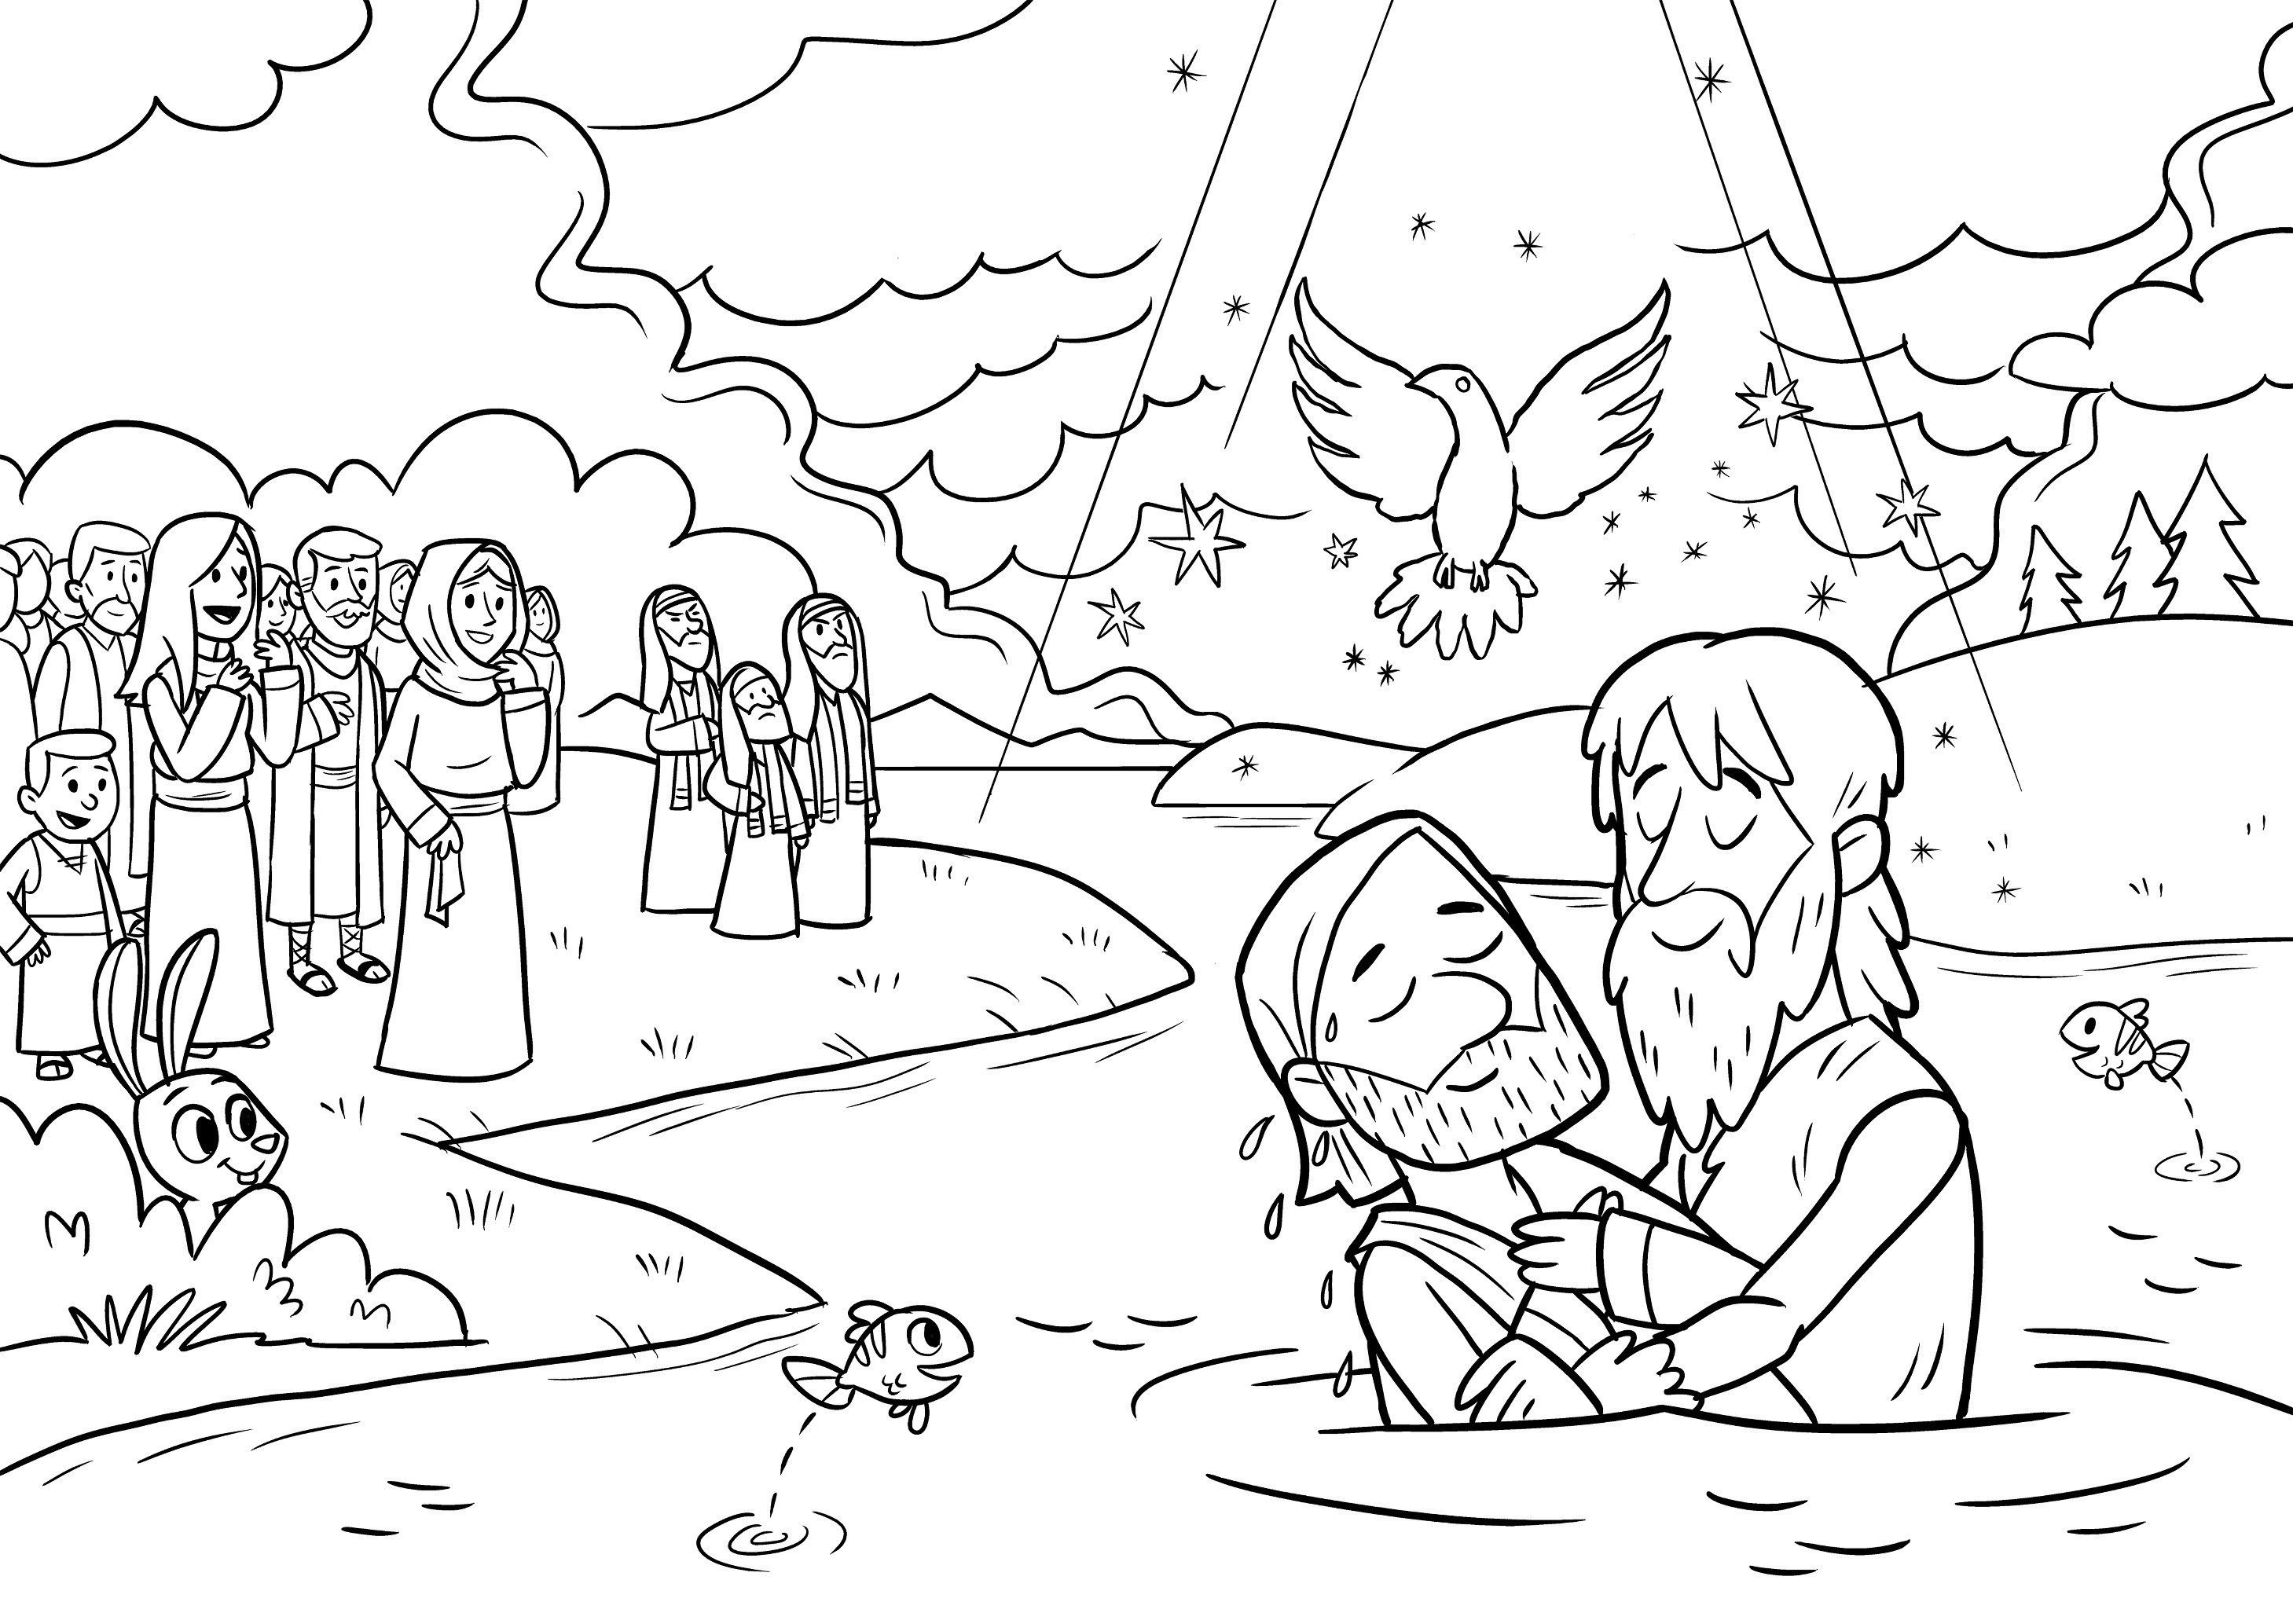 Grab Your New Coloring Pages Jesus Baptism Free Https Www Gethighit Com New Coloring Pages Jesus Coloring Pages Sunday School Coloring Pages Coloring Pages